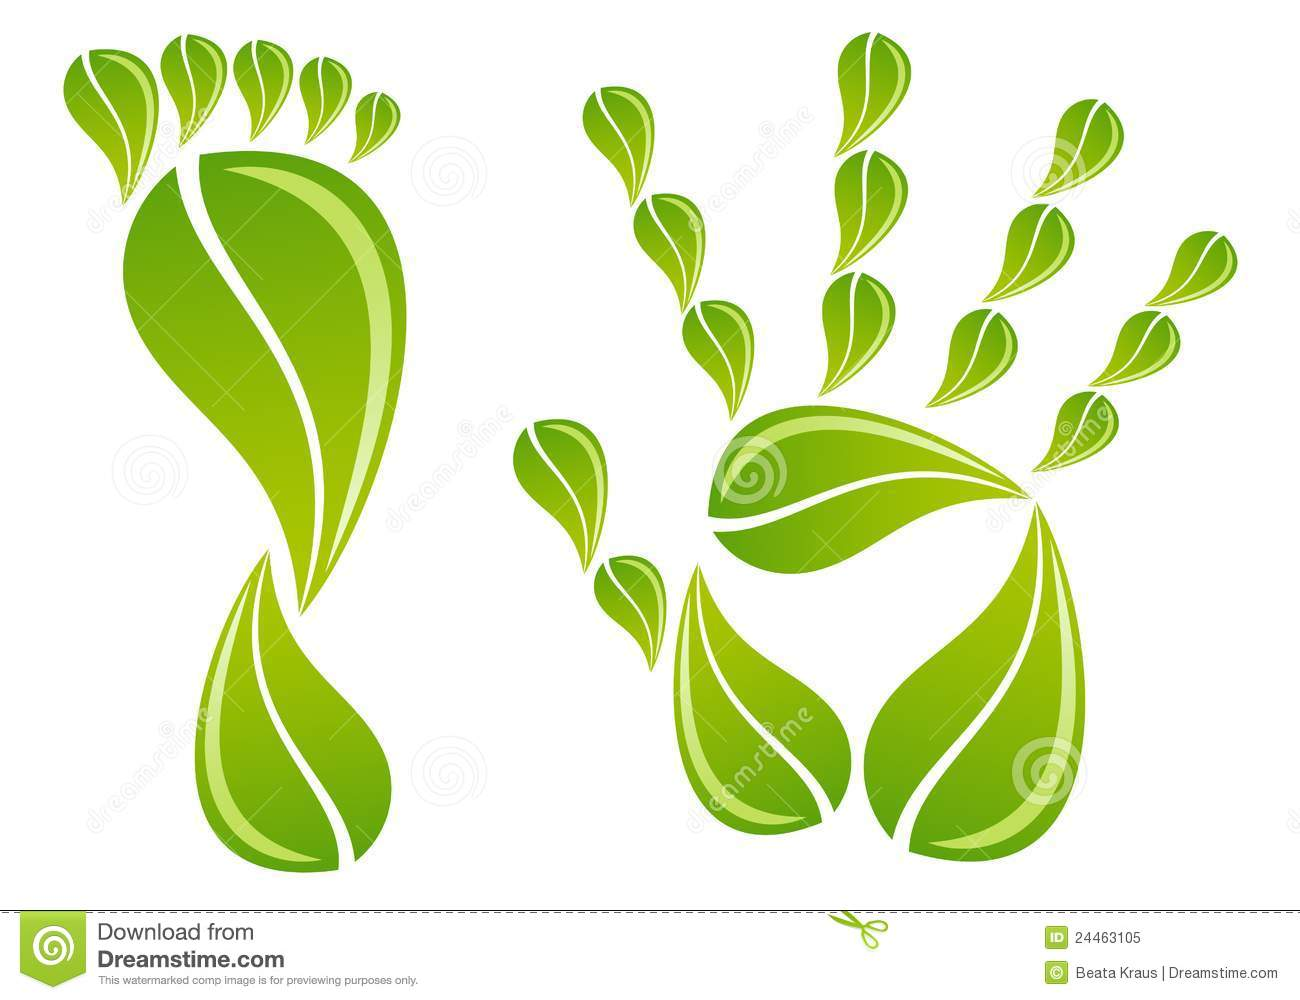 Hand and foot with leaves, vector